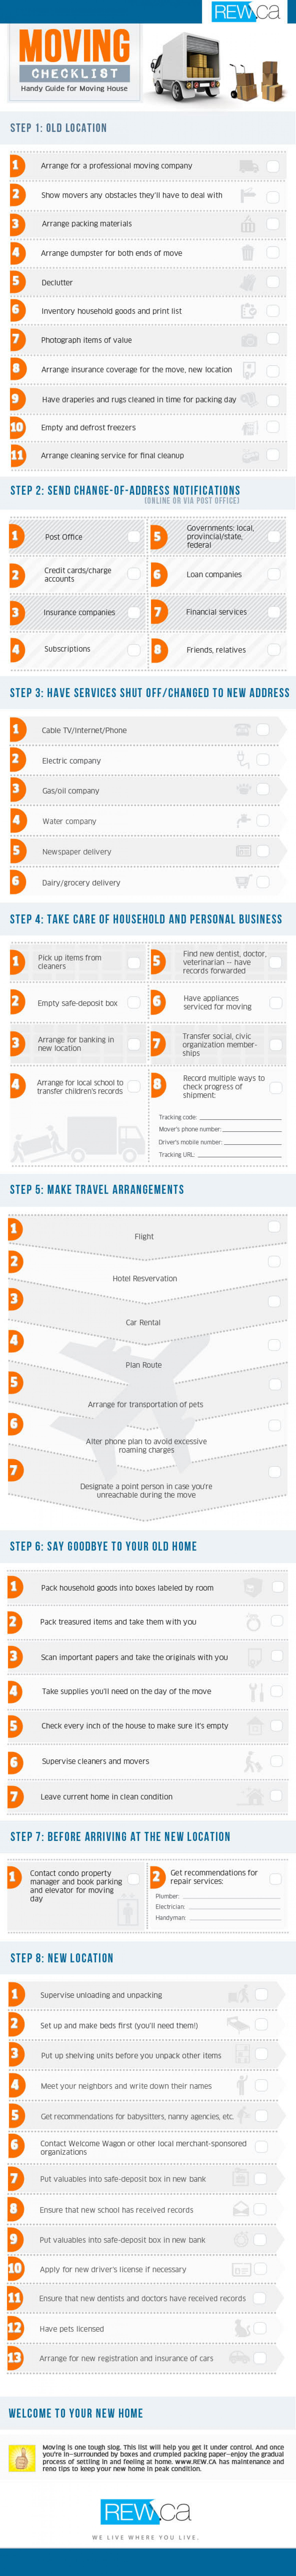 Moving Checklist: Handy Guide for Moving House Infographic